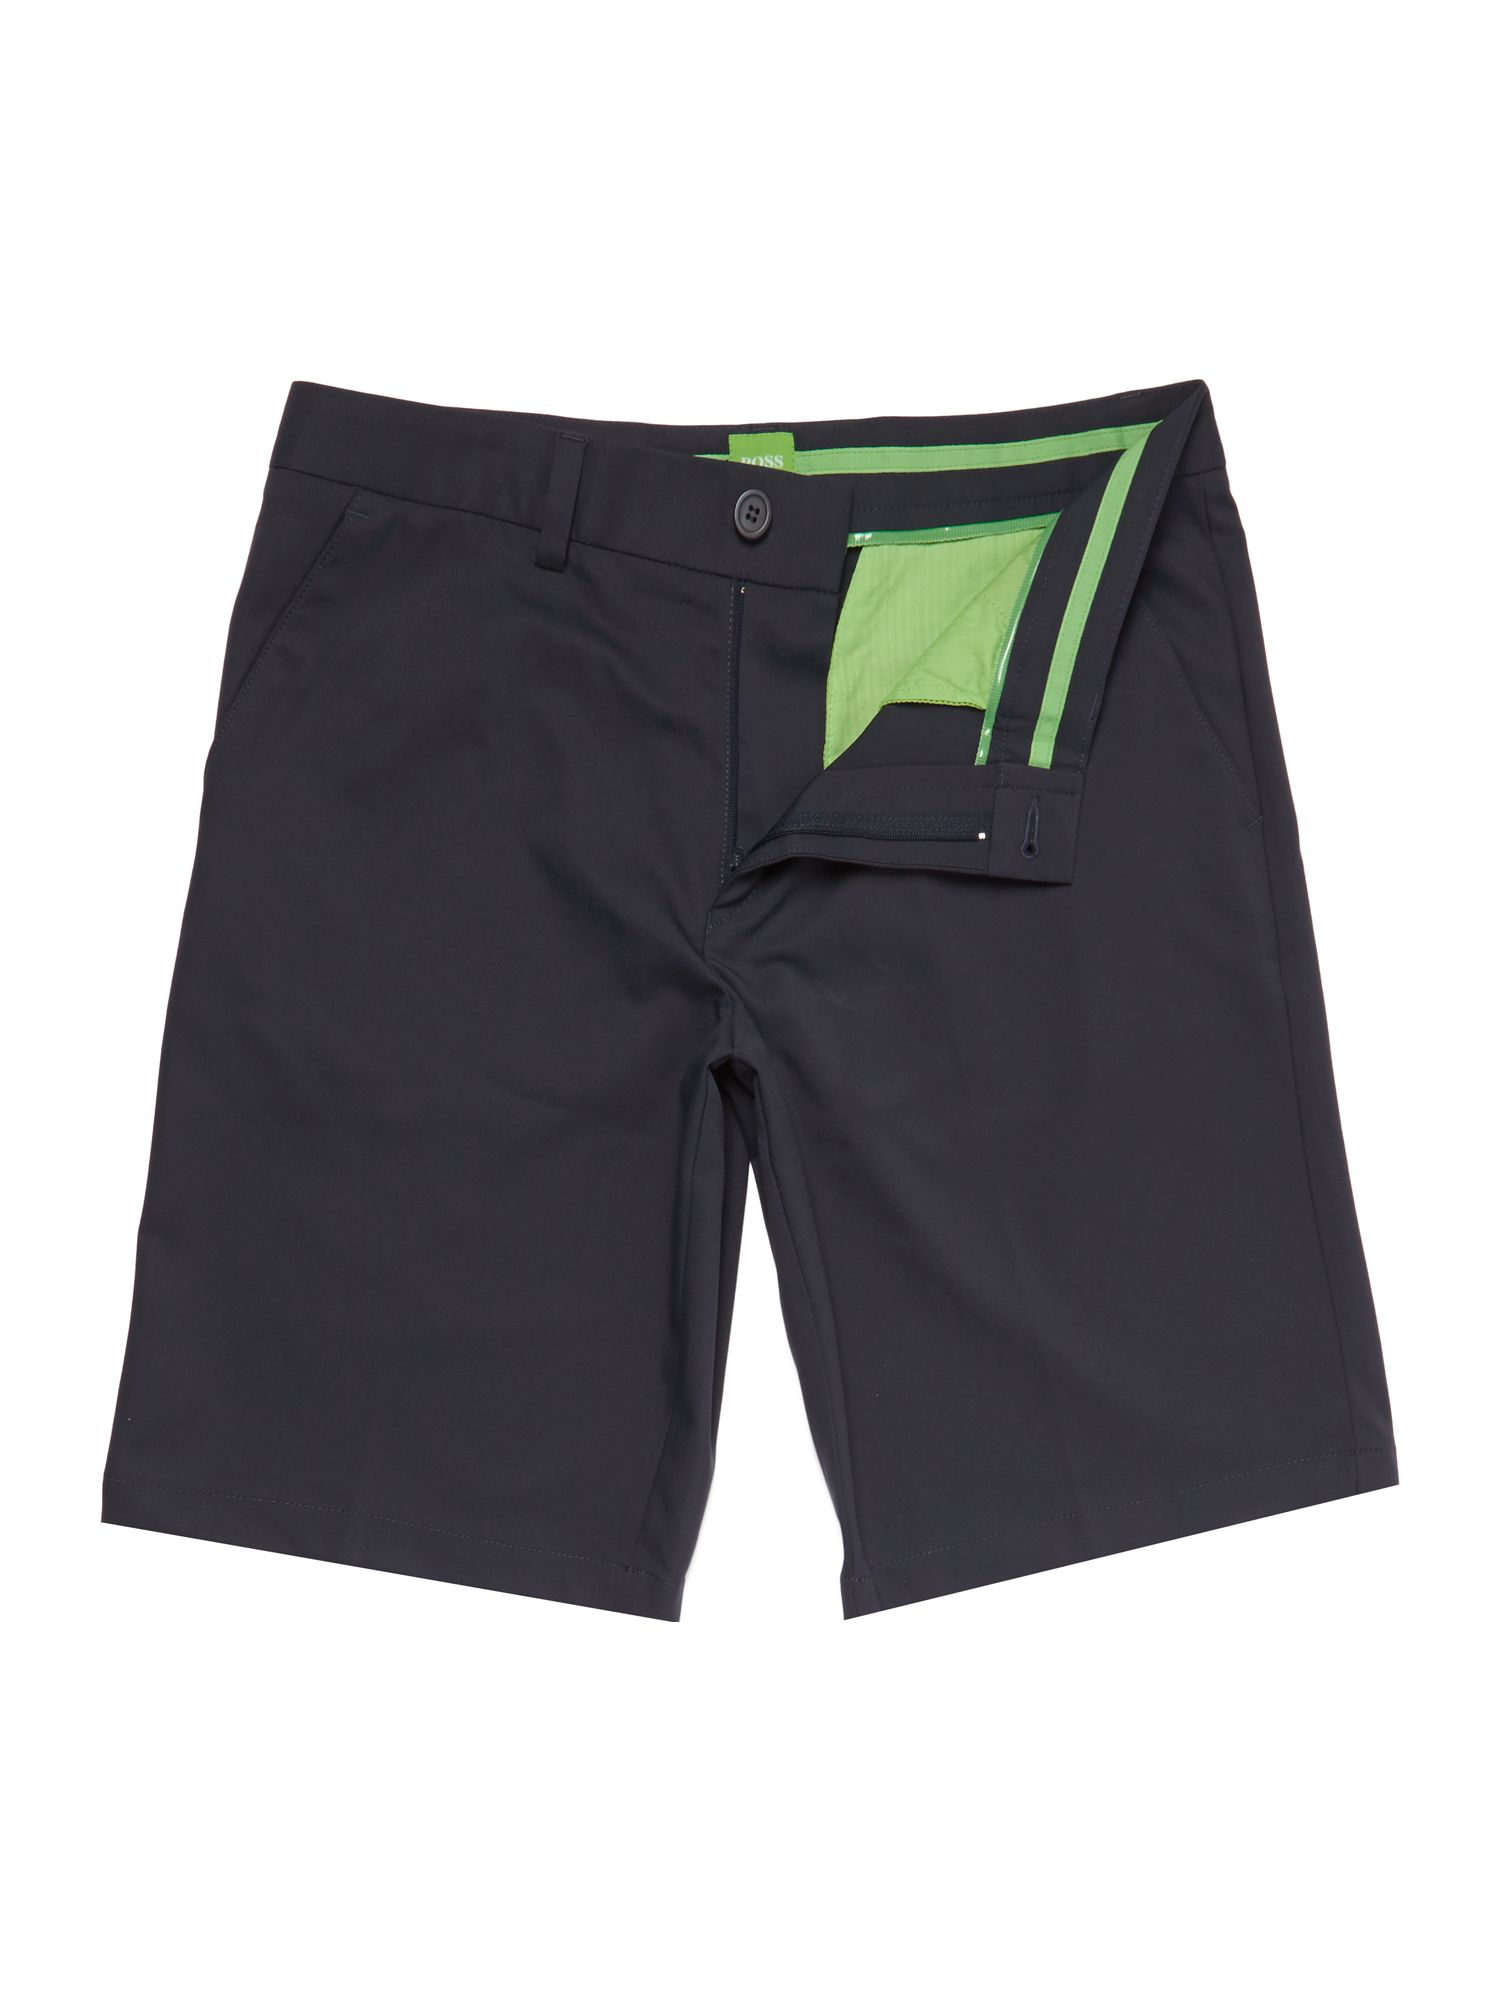 Men&39s Hugo Boss Golf shorts Navy